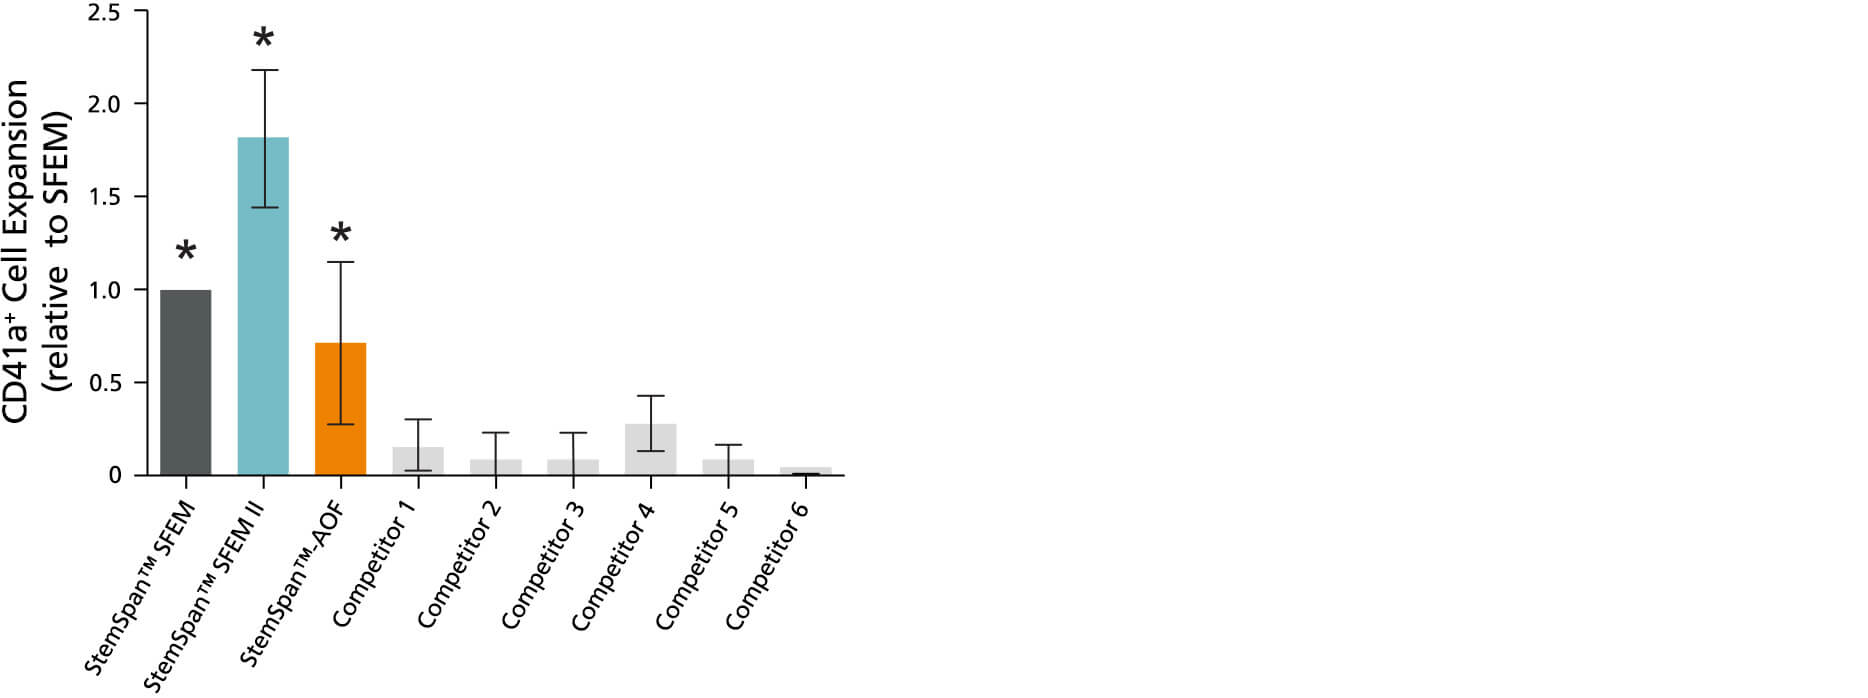 Bar graph of stemspan media comparison to competitors in megakaryocyte expansion